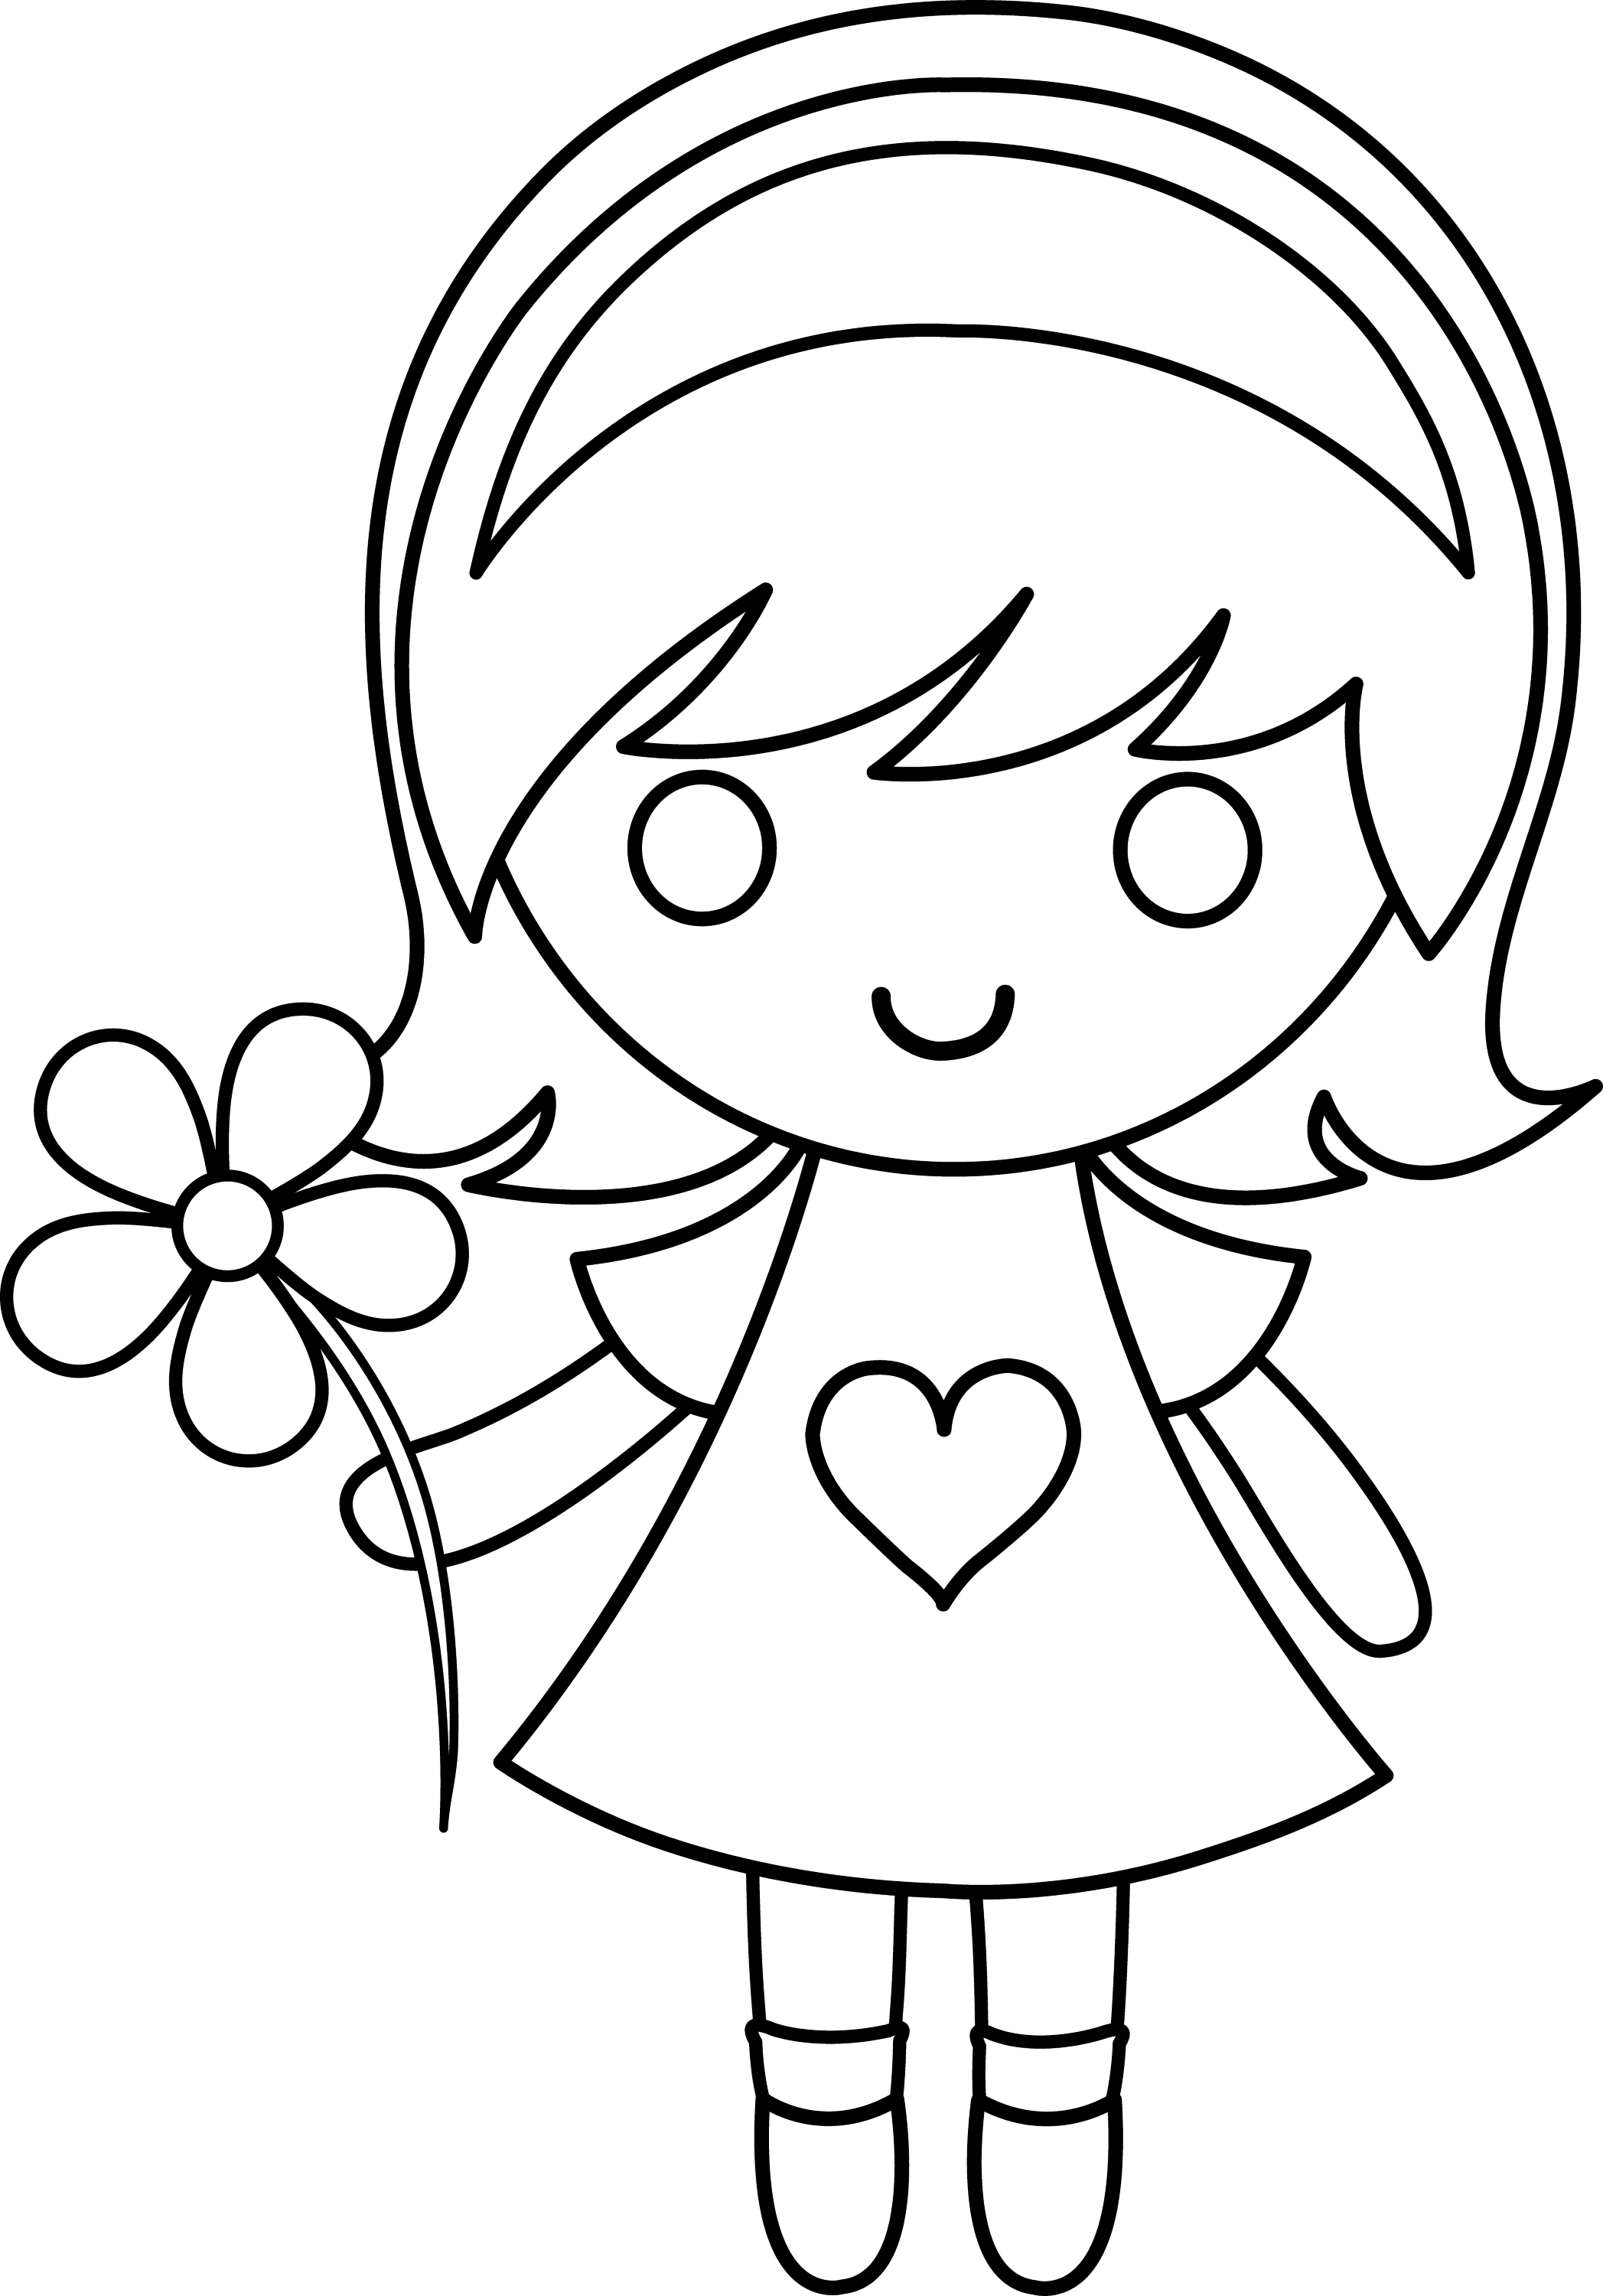 clip art coloring sheets simple coloring pages to download and print for free clip art coloring sheets